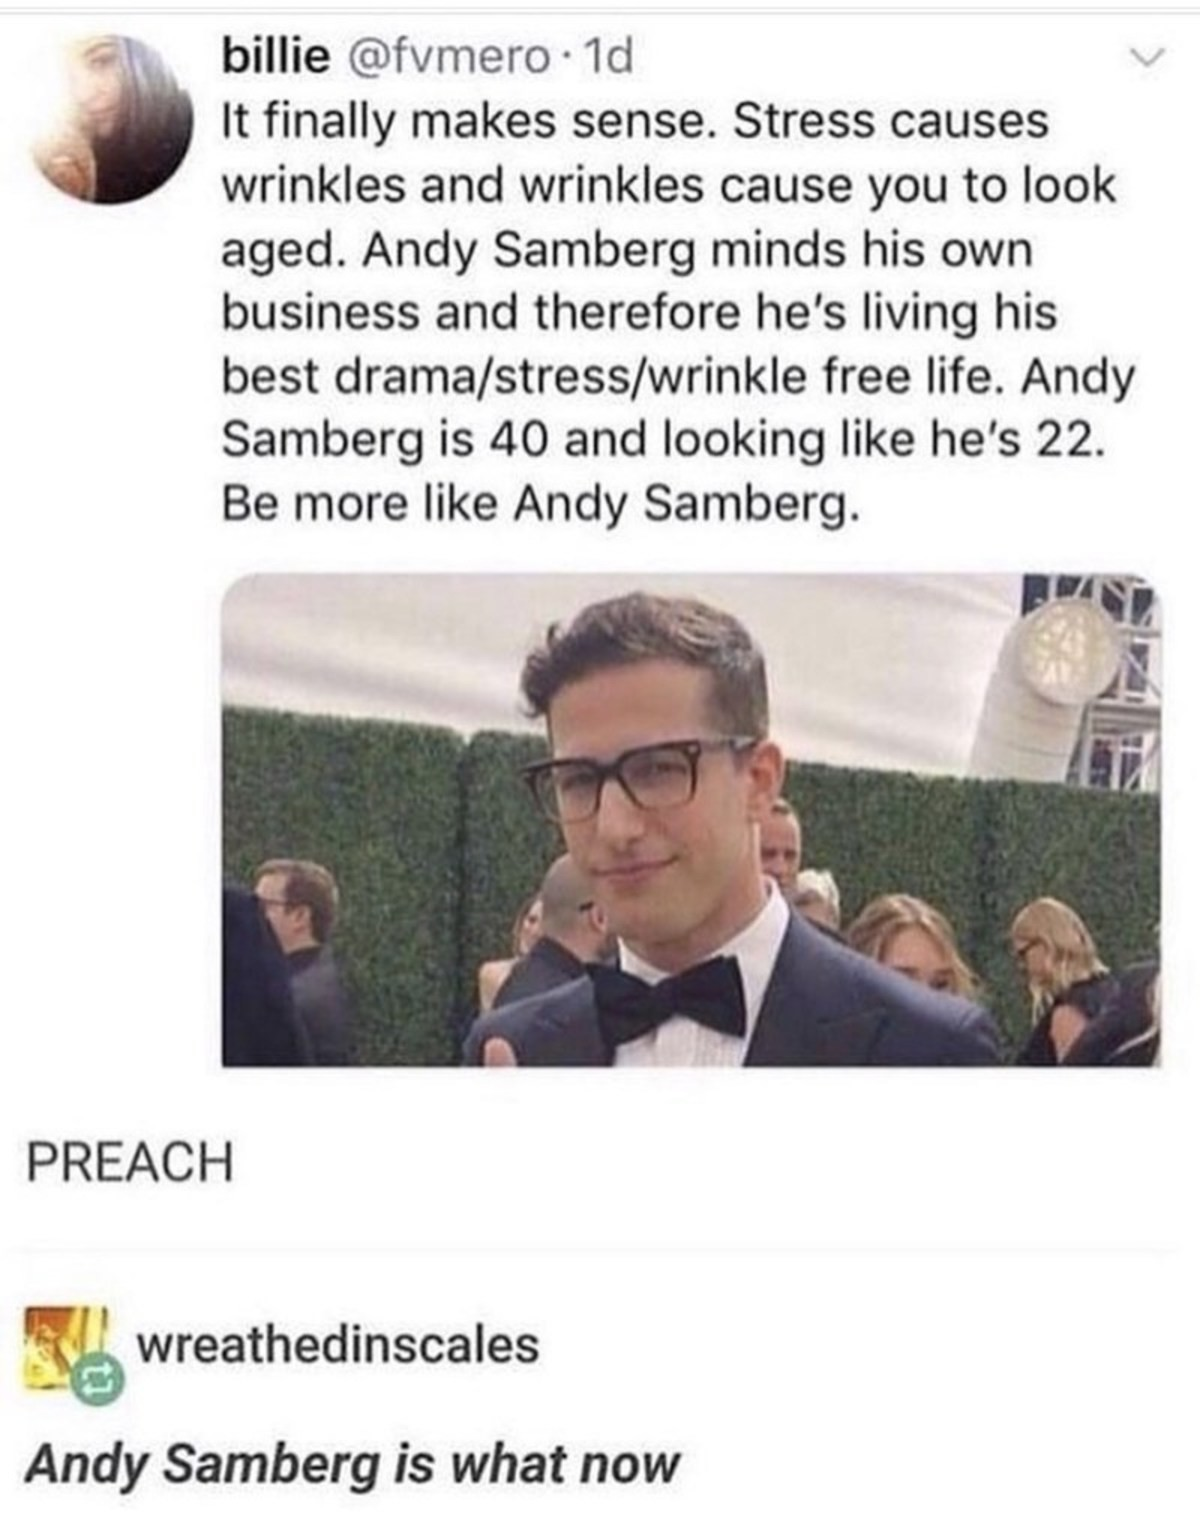 Andy Samberg. .. the real secret: celebrities have personal trainers, dietitians, surgeons, and all kinds of resources to stay looking young. Most celebrities are in their 40s a